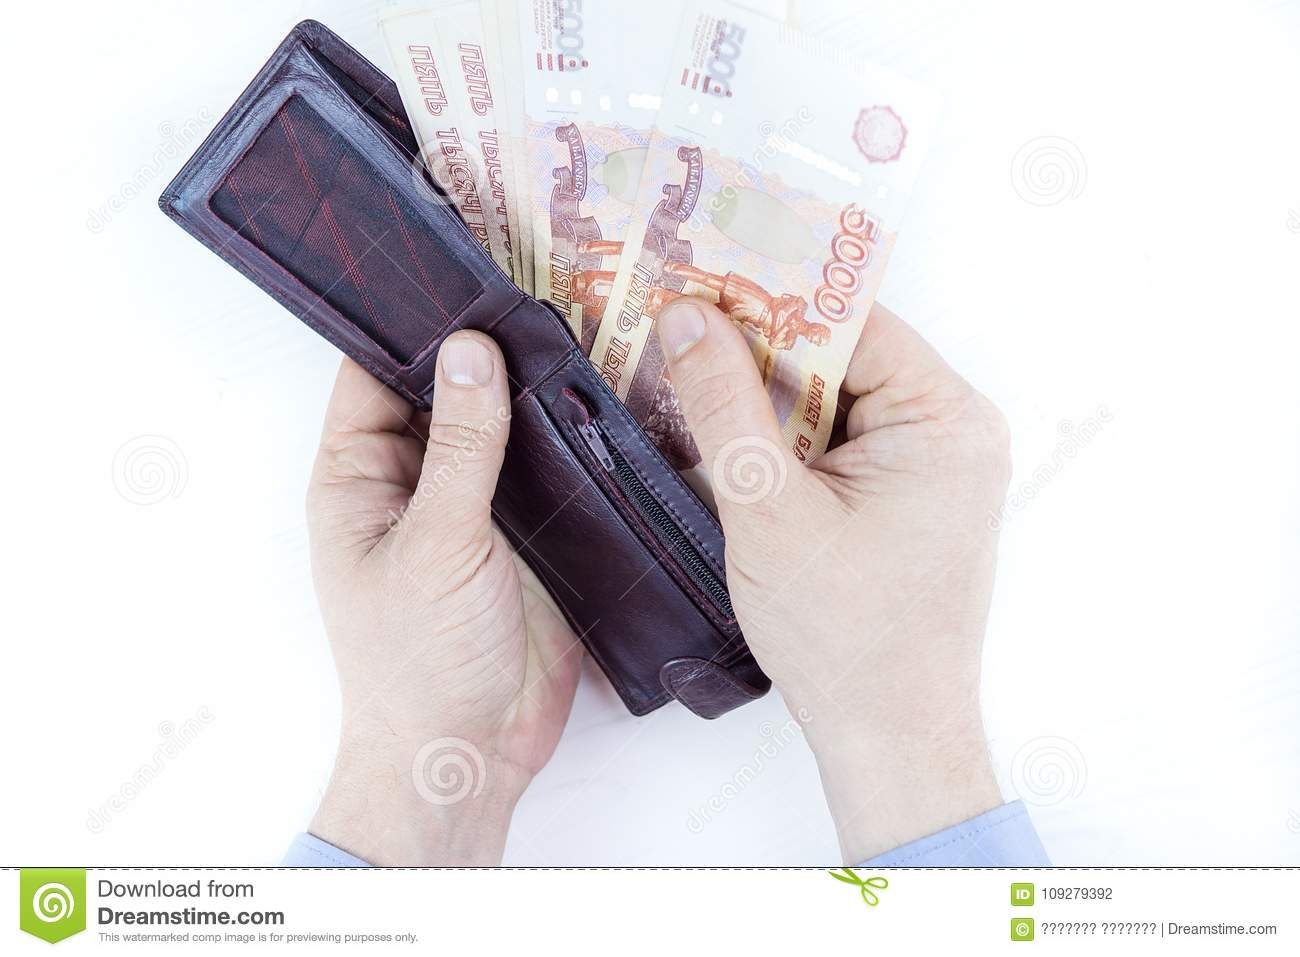 Purse with money in hands